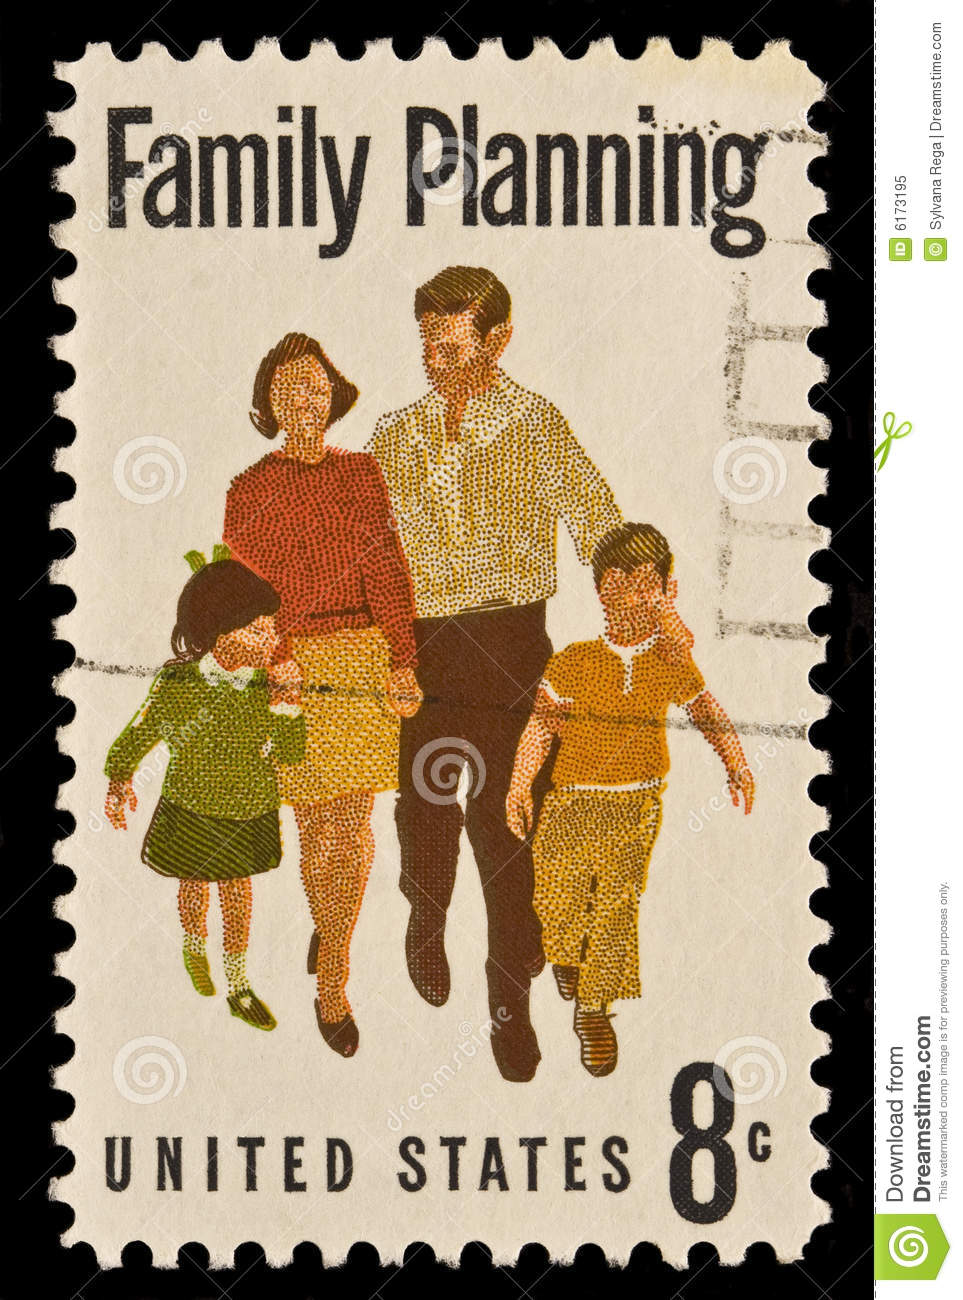 Family planning postal stamp royalty free stock photo for Family planning com